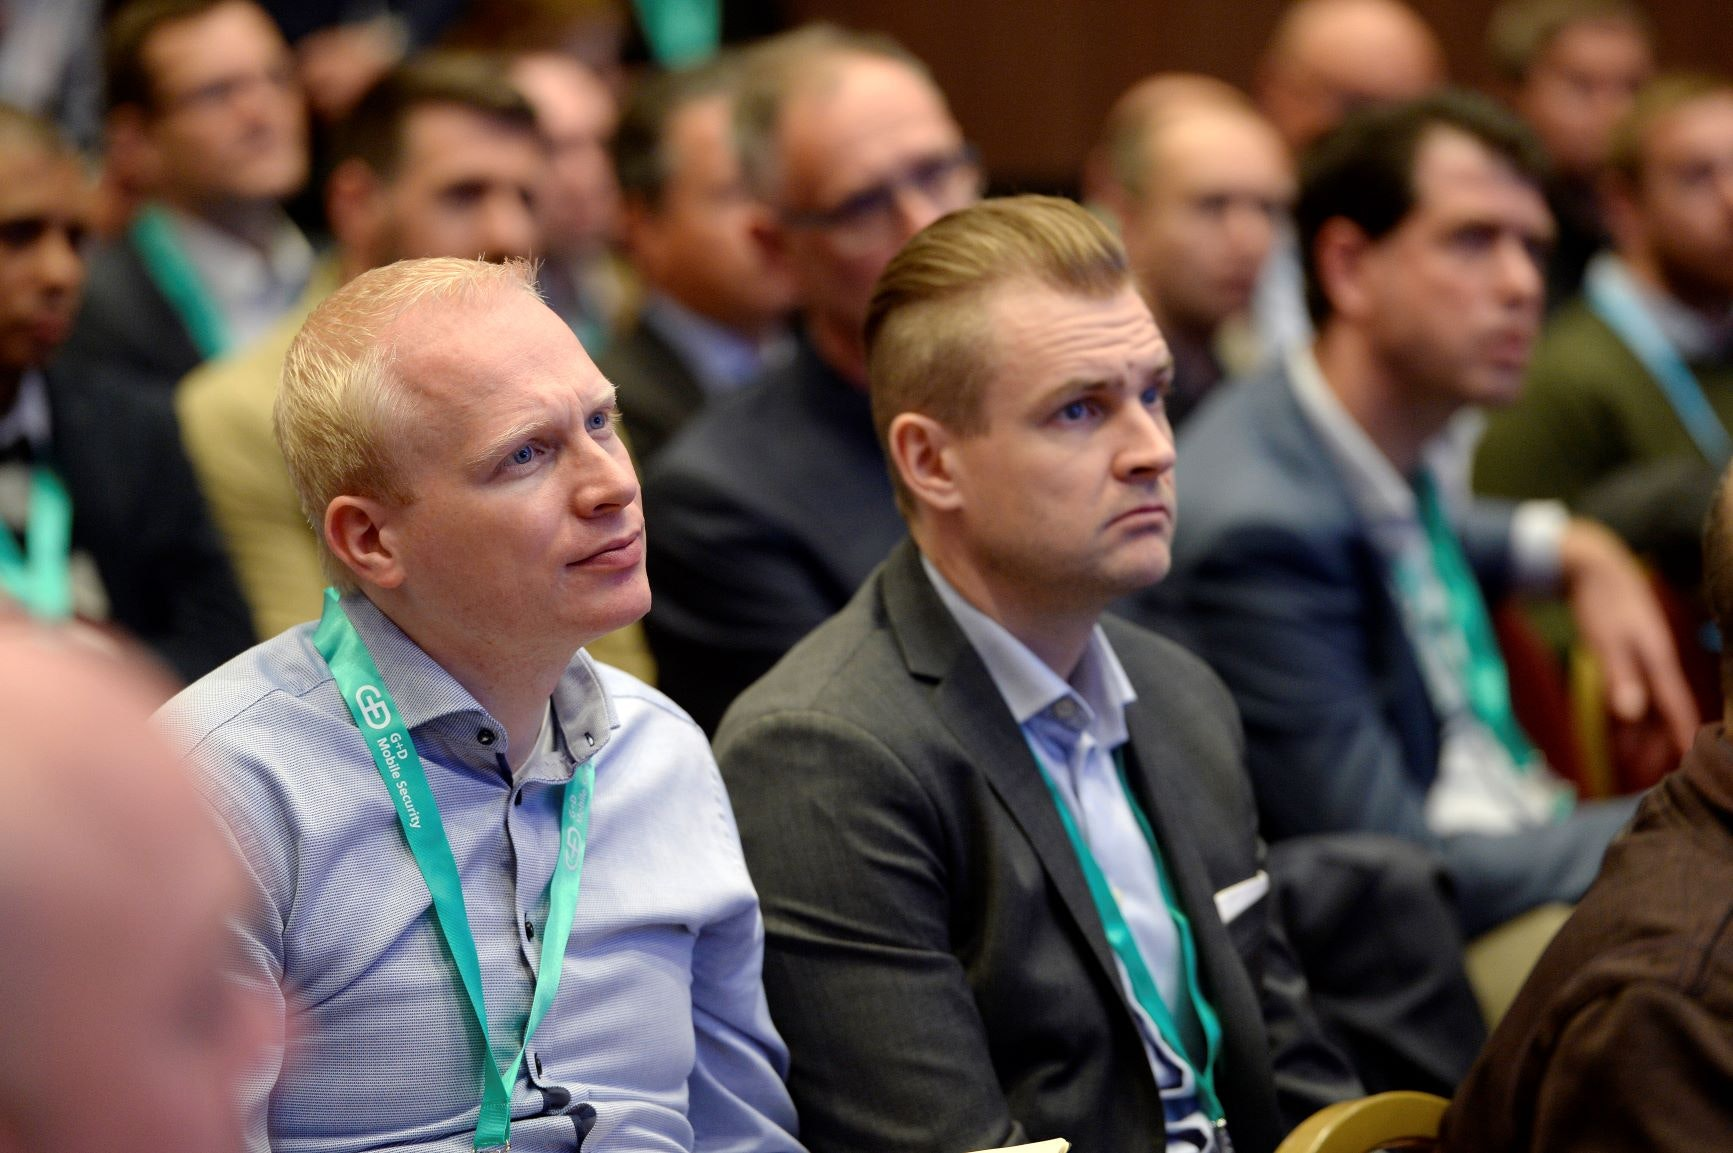 MVNOs Panel Discussions